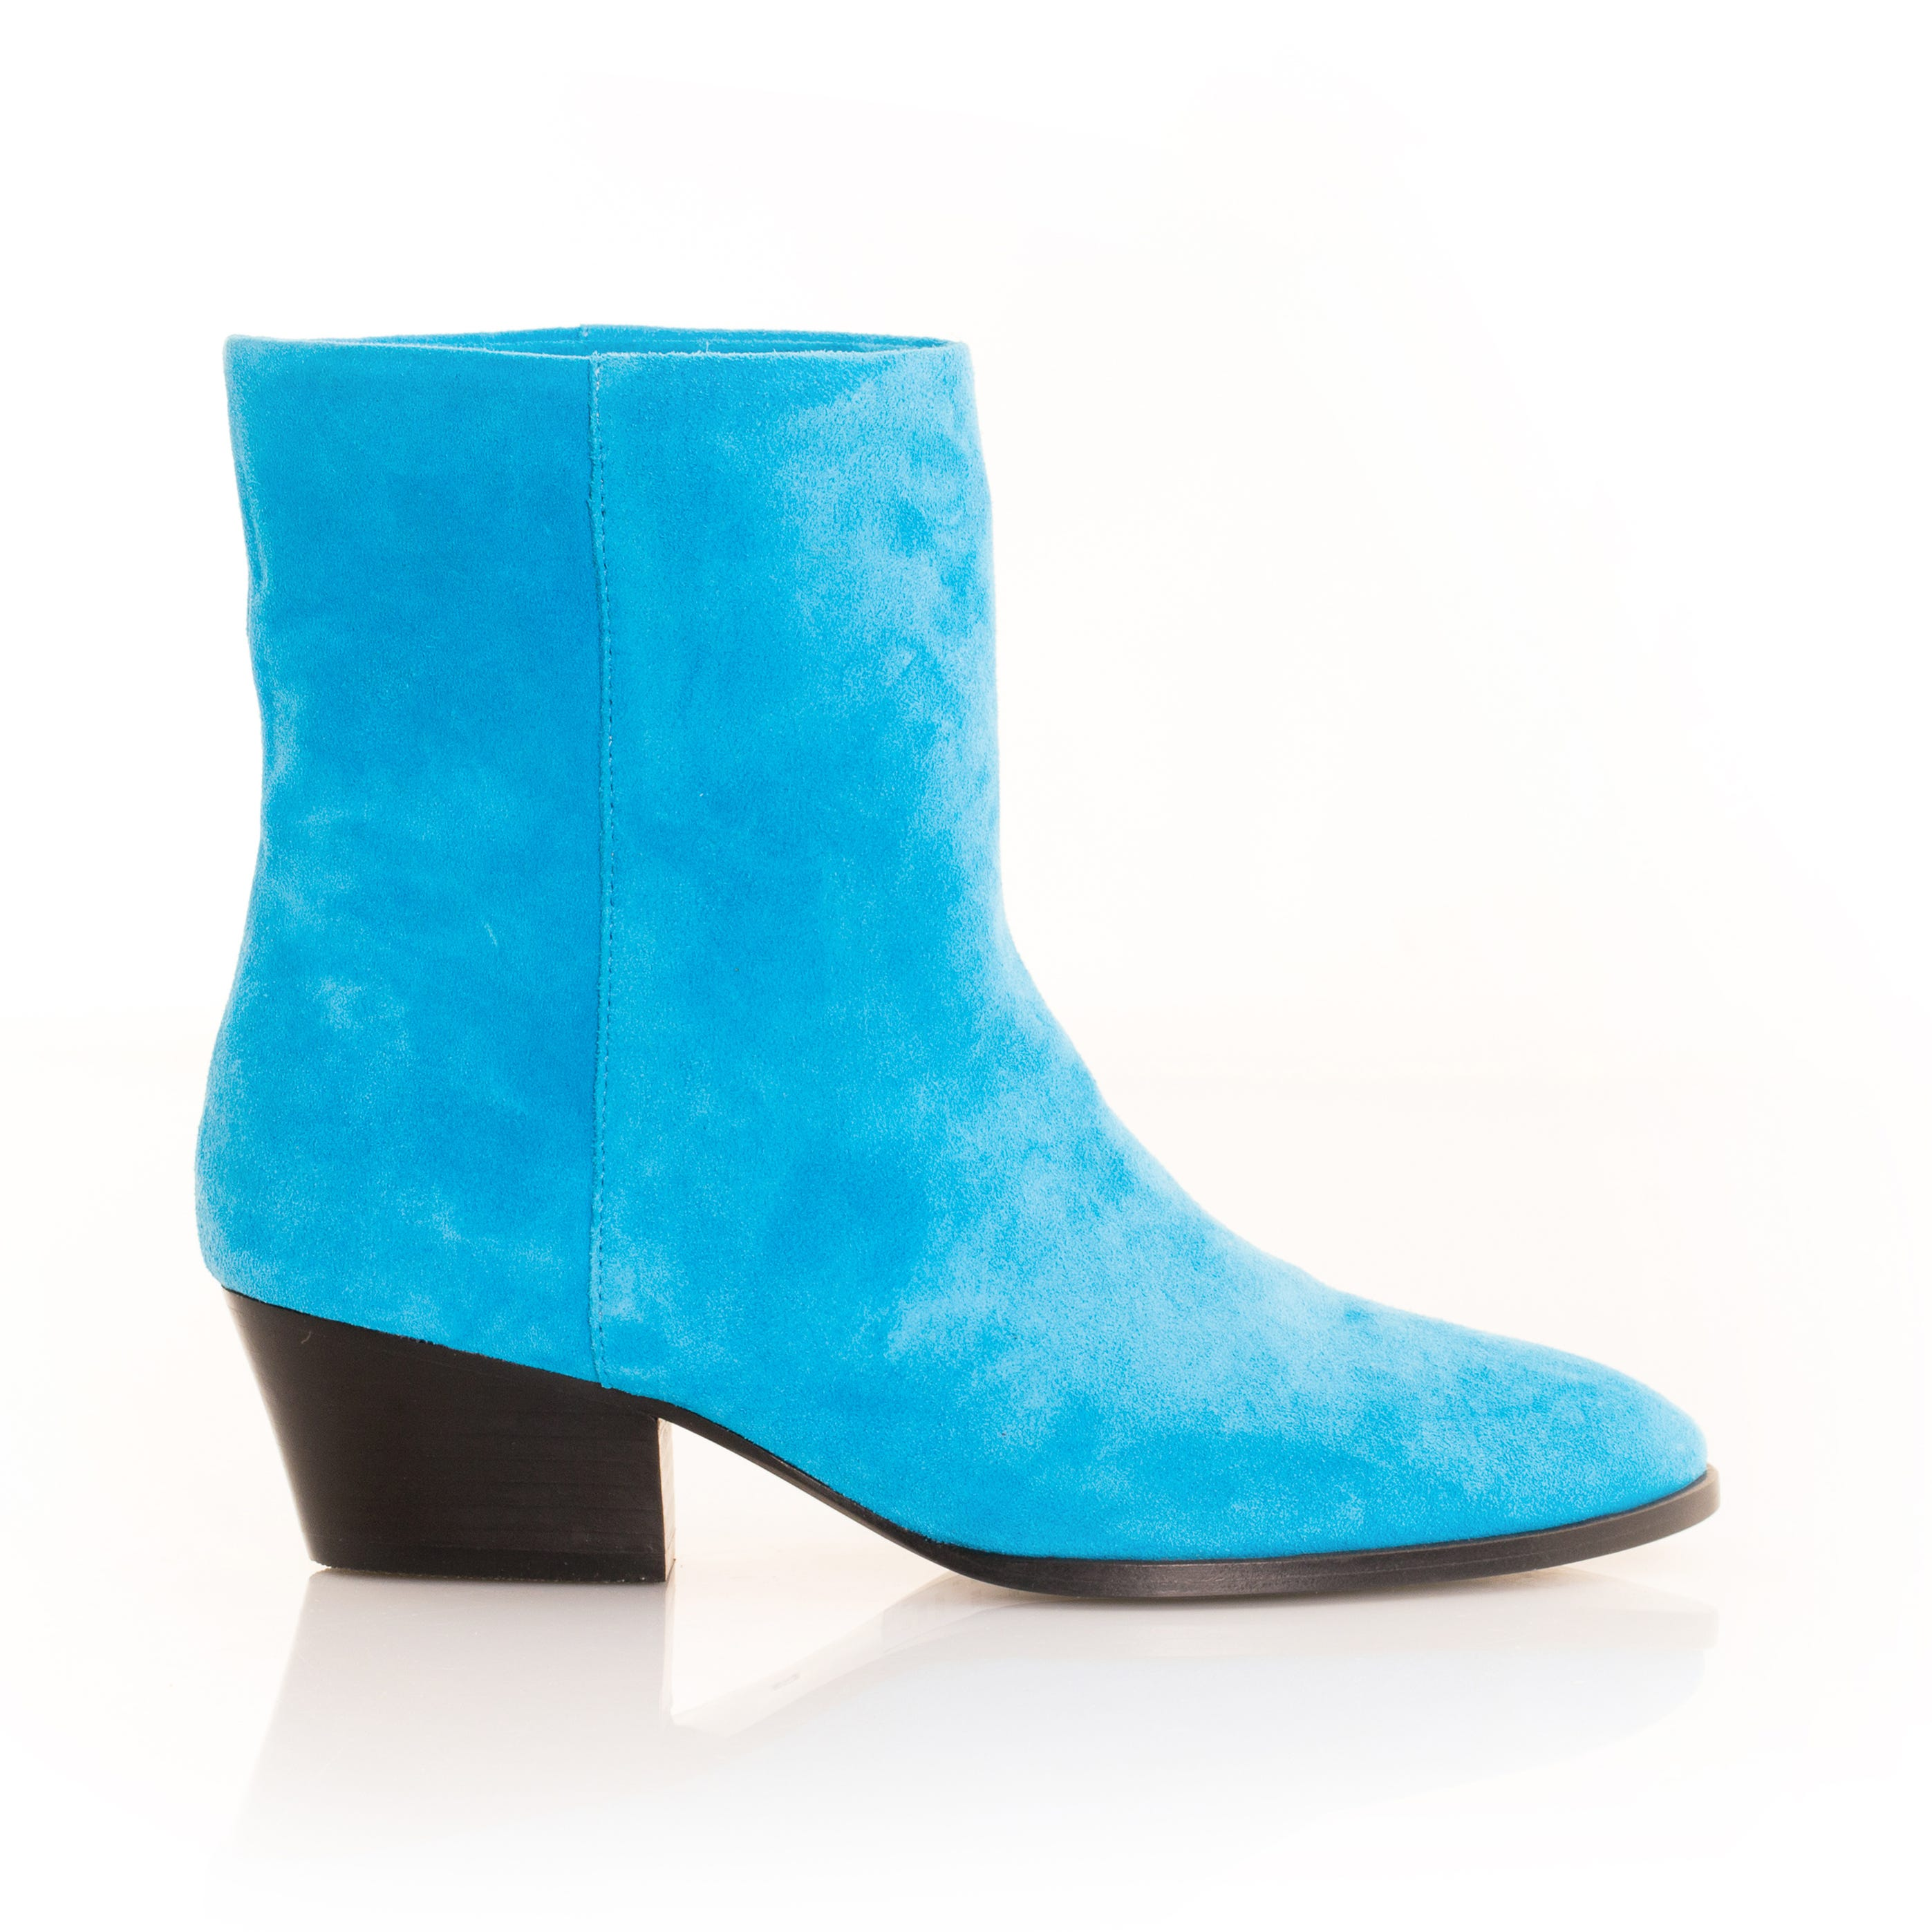 articles yes the rain really they comforter most comfortable boots spring walking do exist for booties